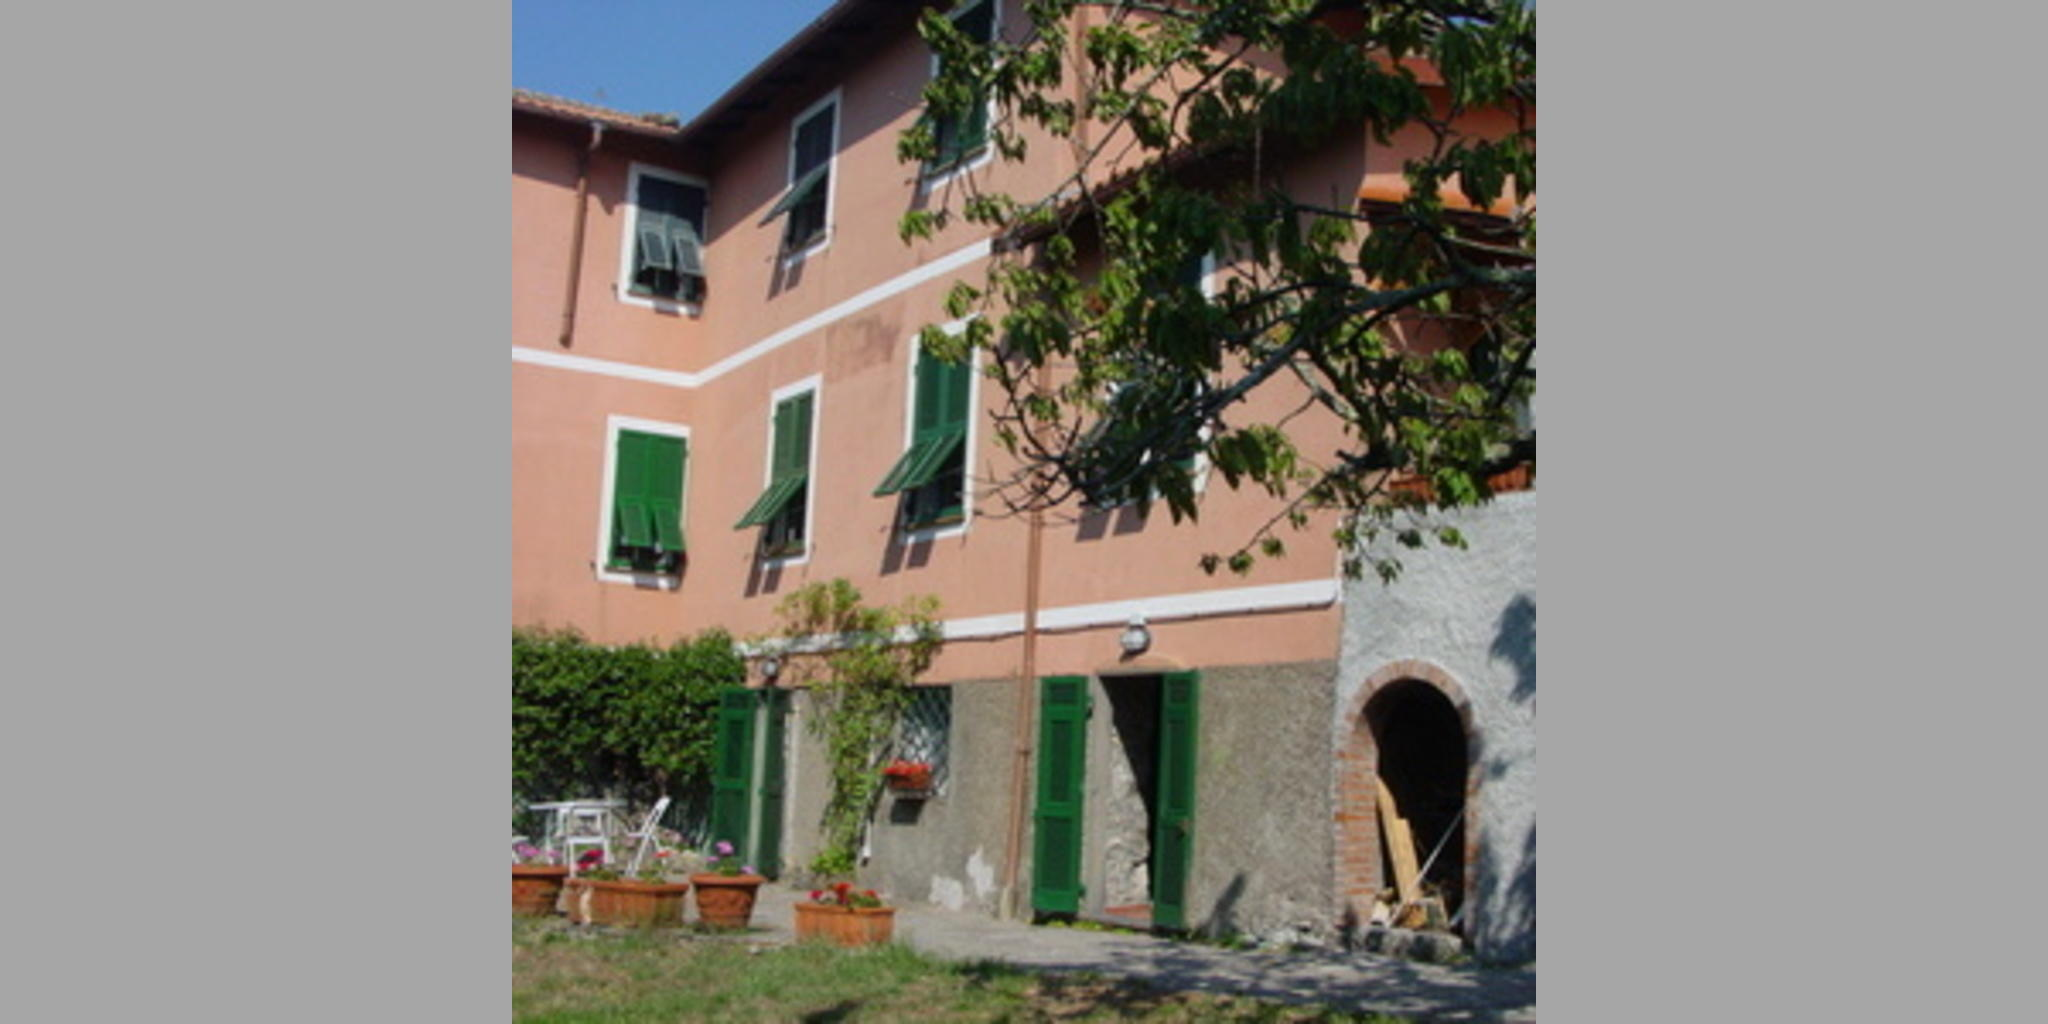 Bed & Breakfast Varese Ligure - Varese Ligure